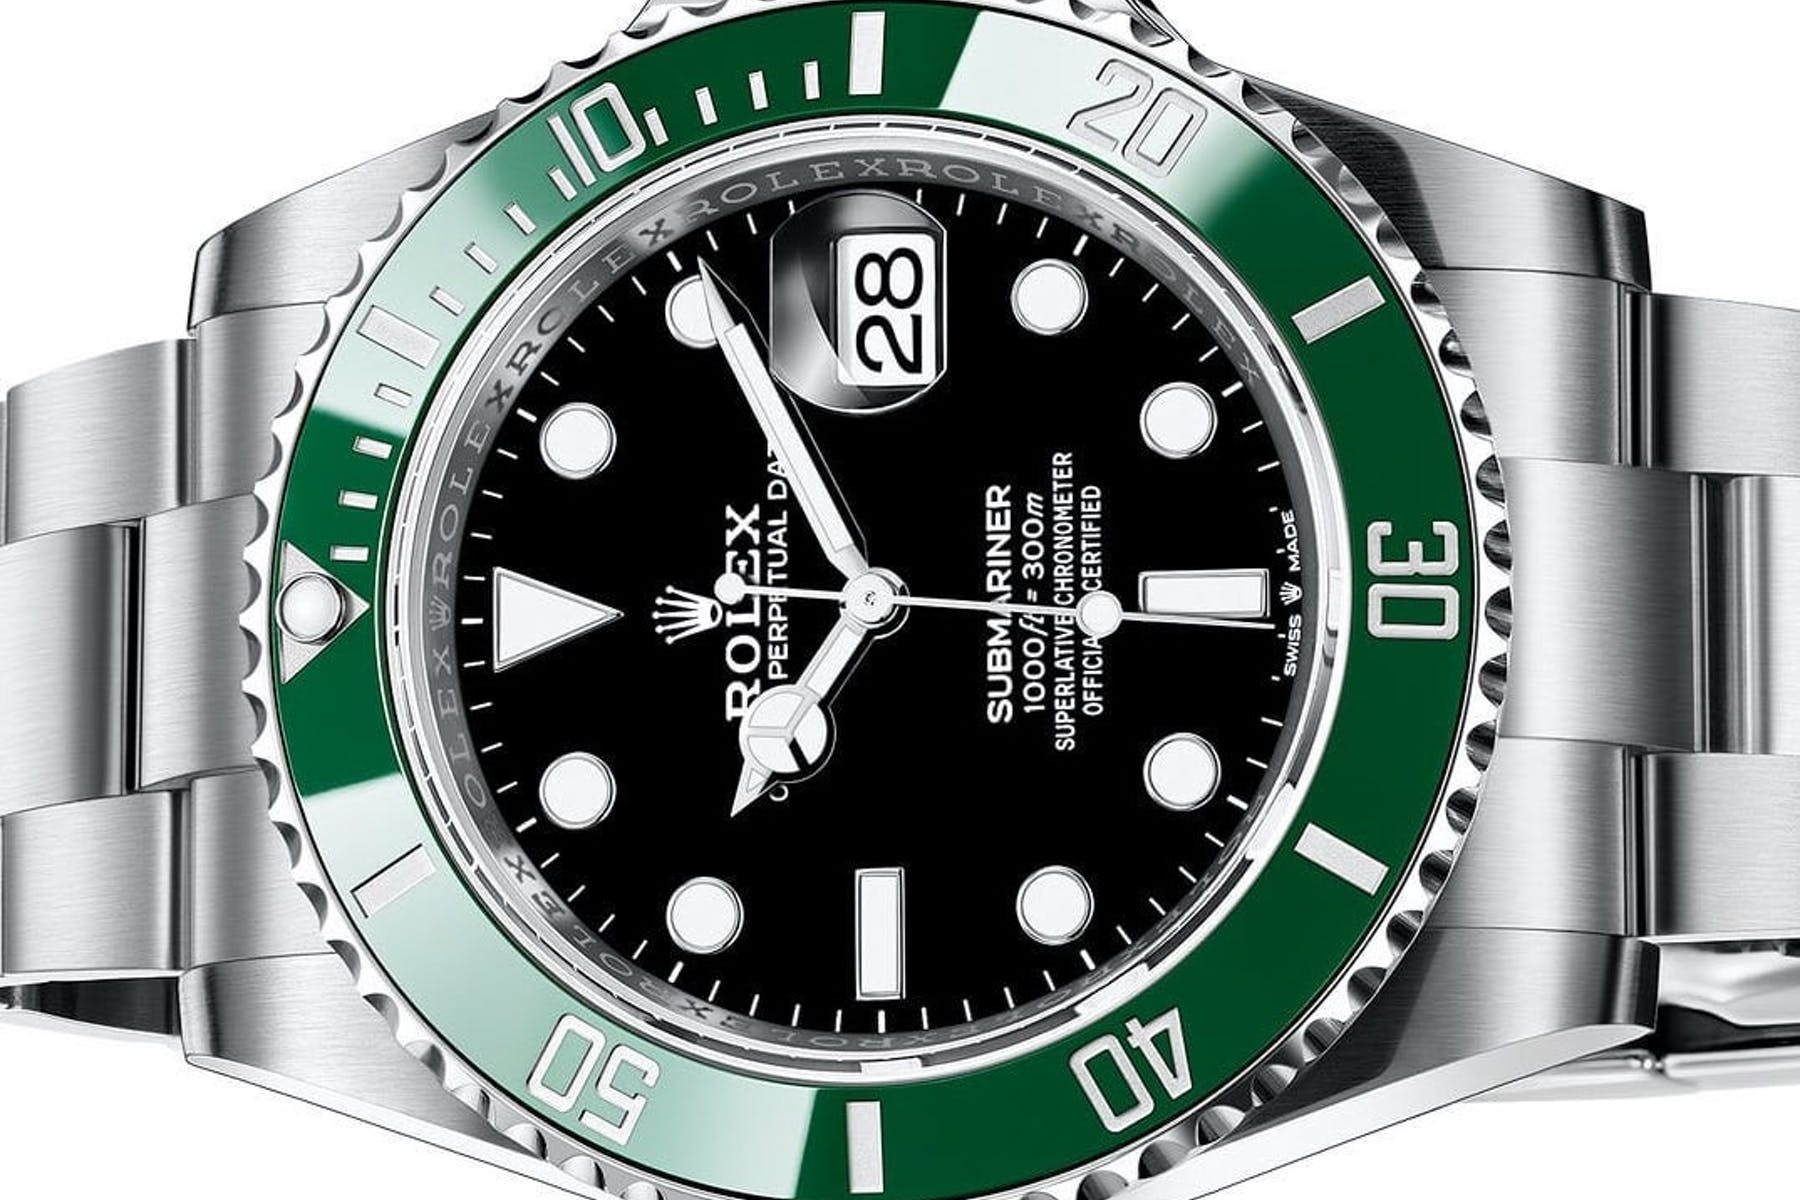 Rolex Submariner Watches Get New Cases And A Movement Upgrade